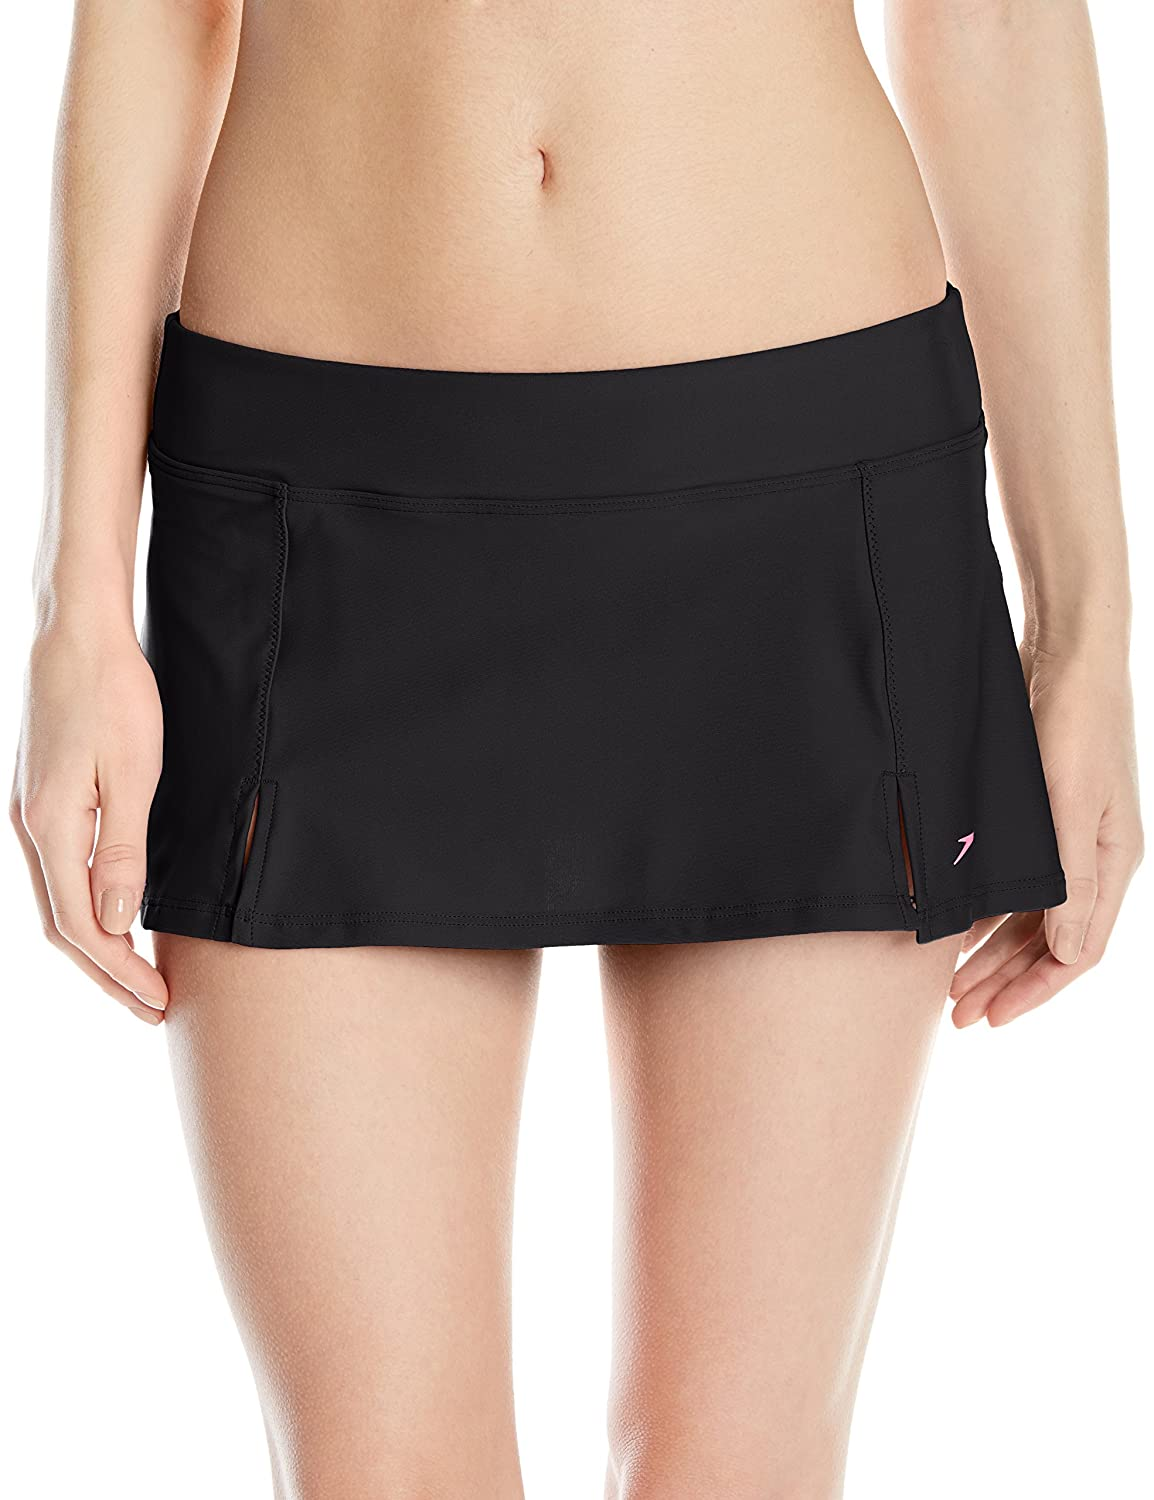 Speedo Women's Active Skirtini 834915-001